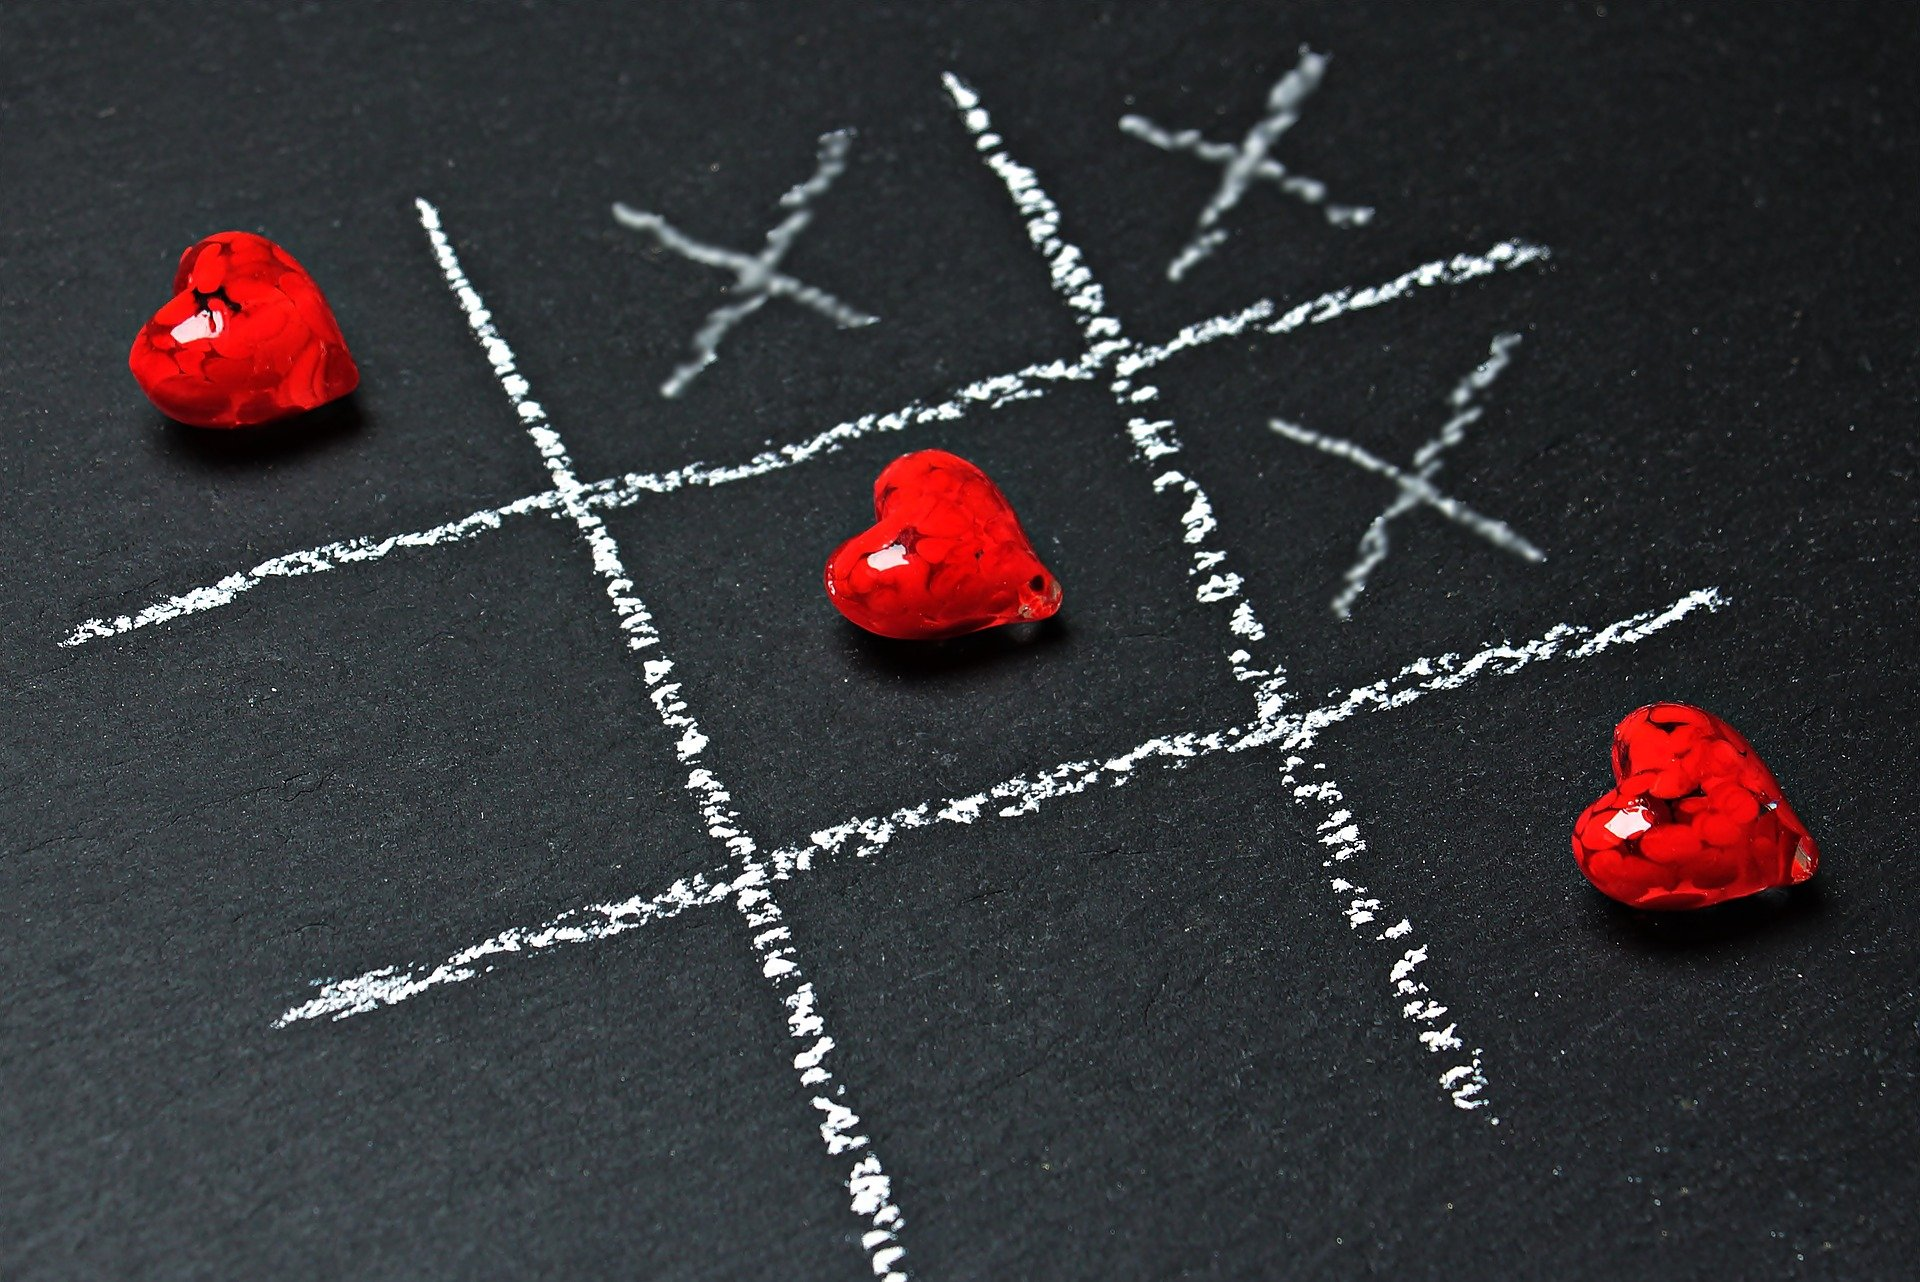 Winning customers' hearts on the most digital Valentine's Day to date